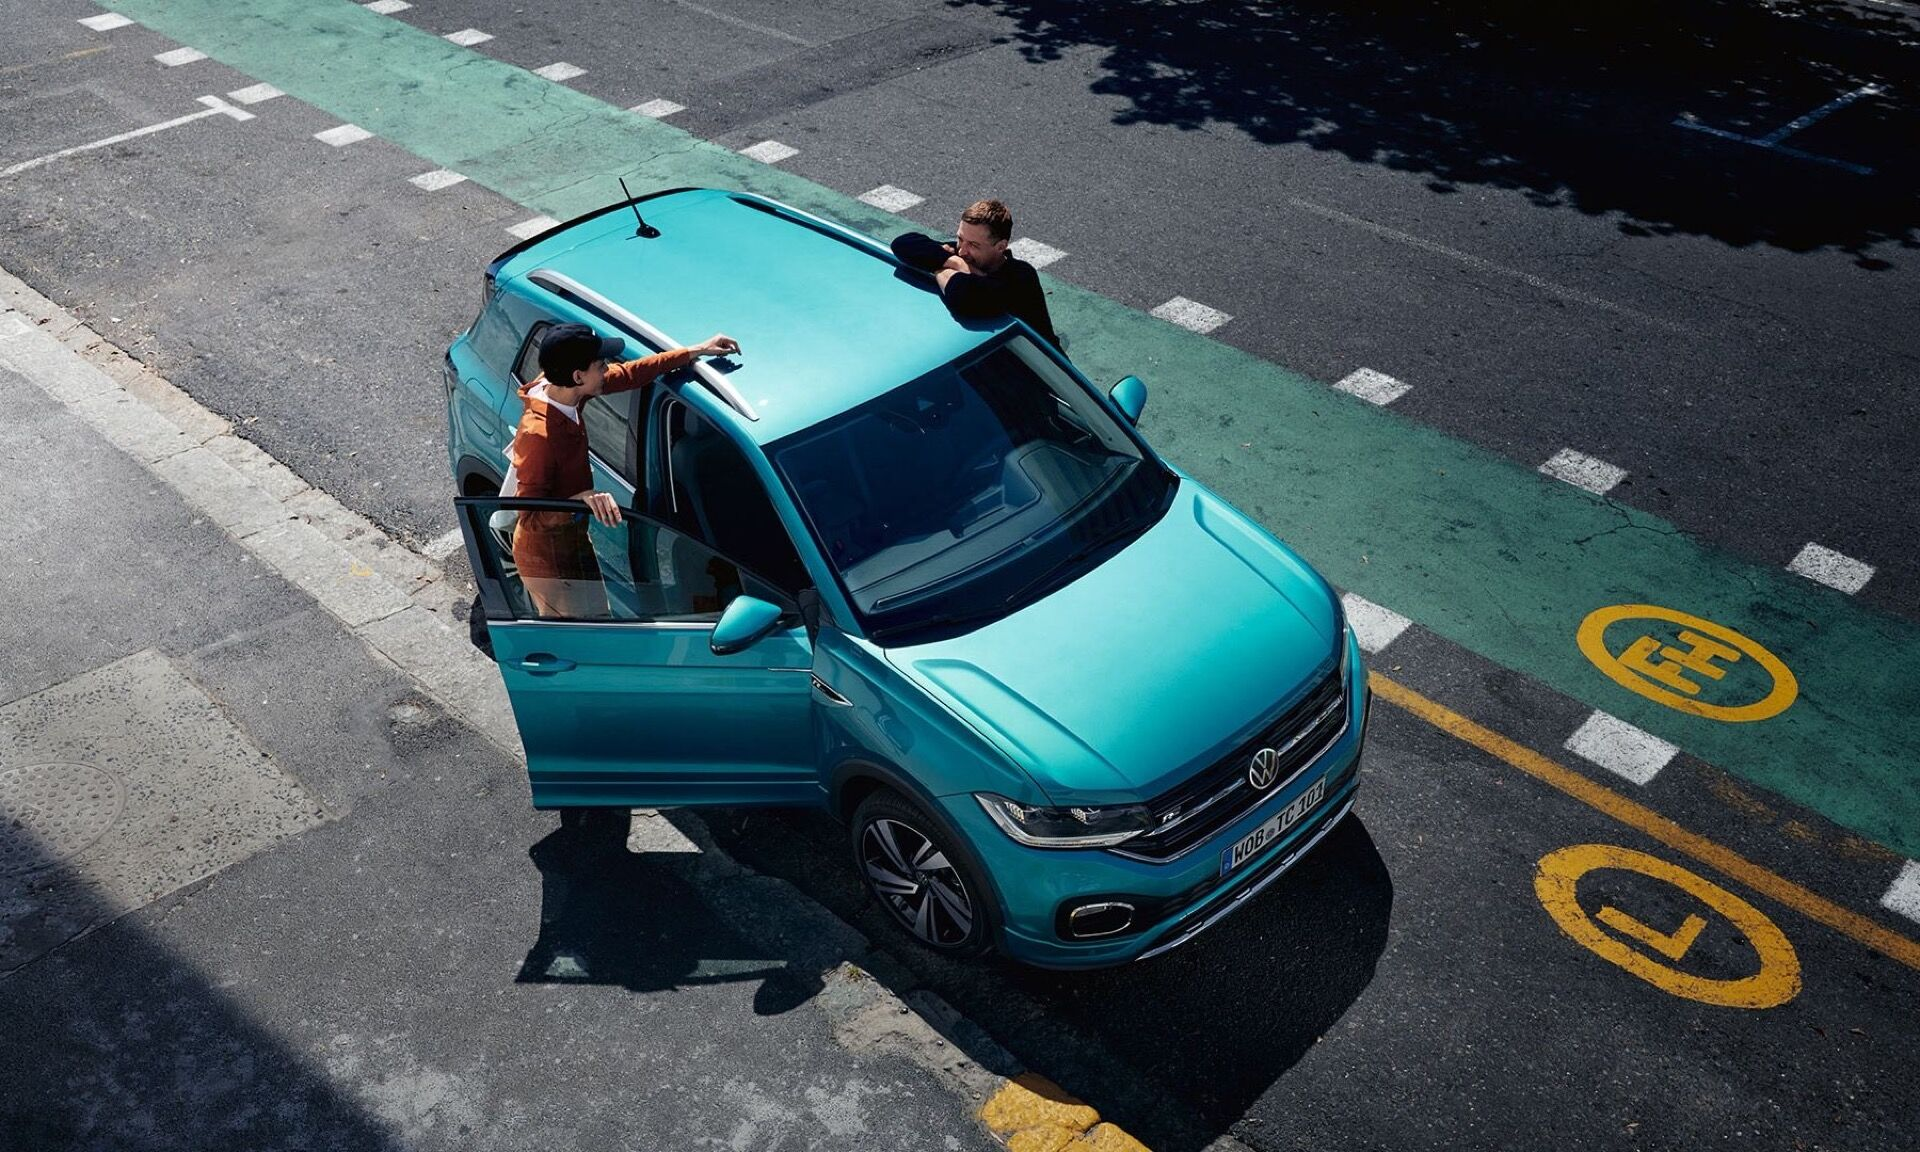 vw t cross aerial view with two people